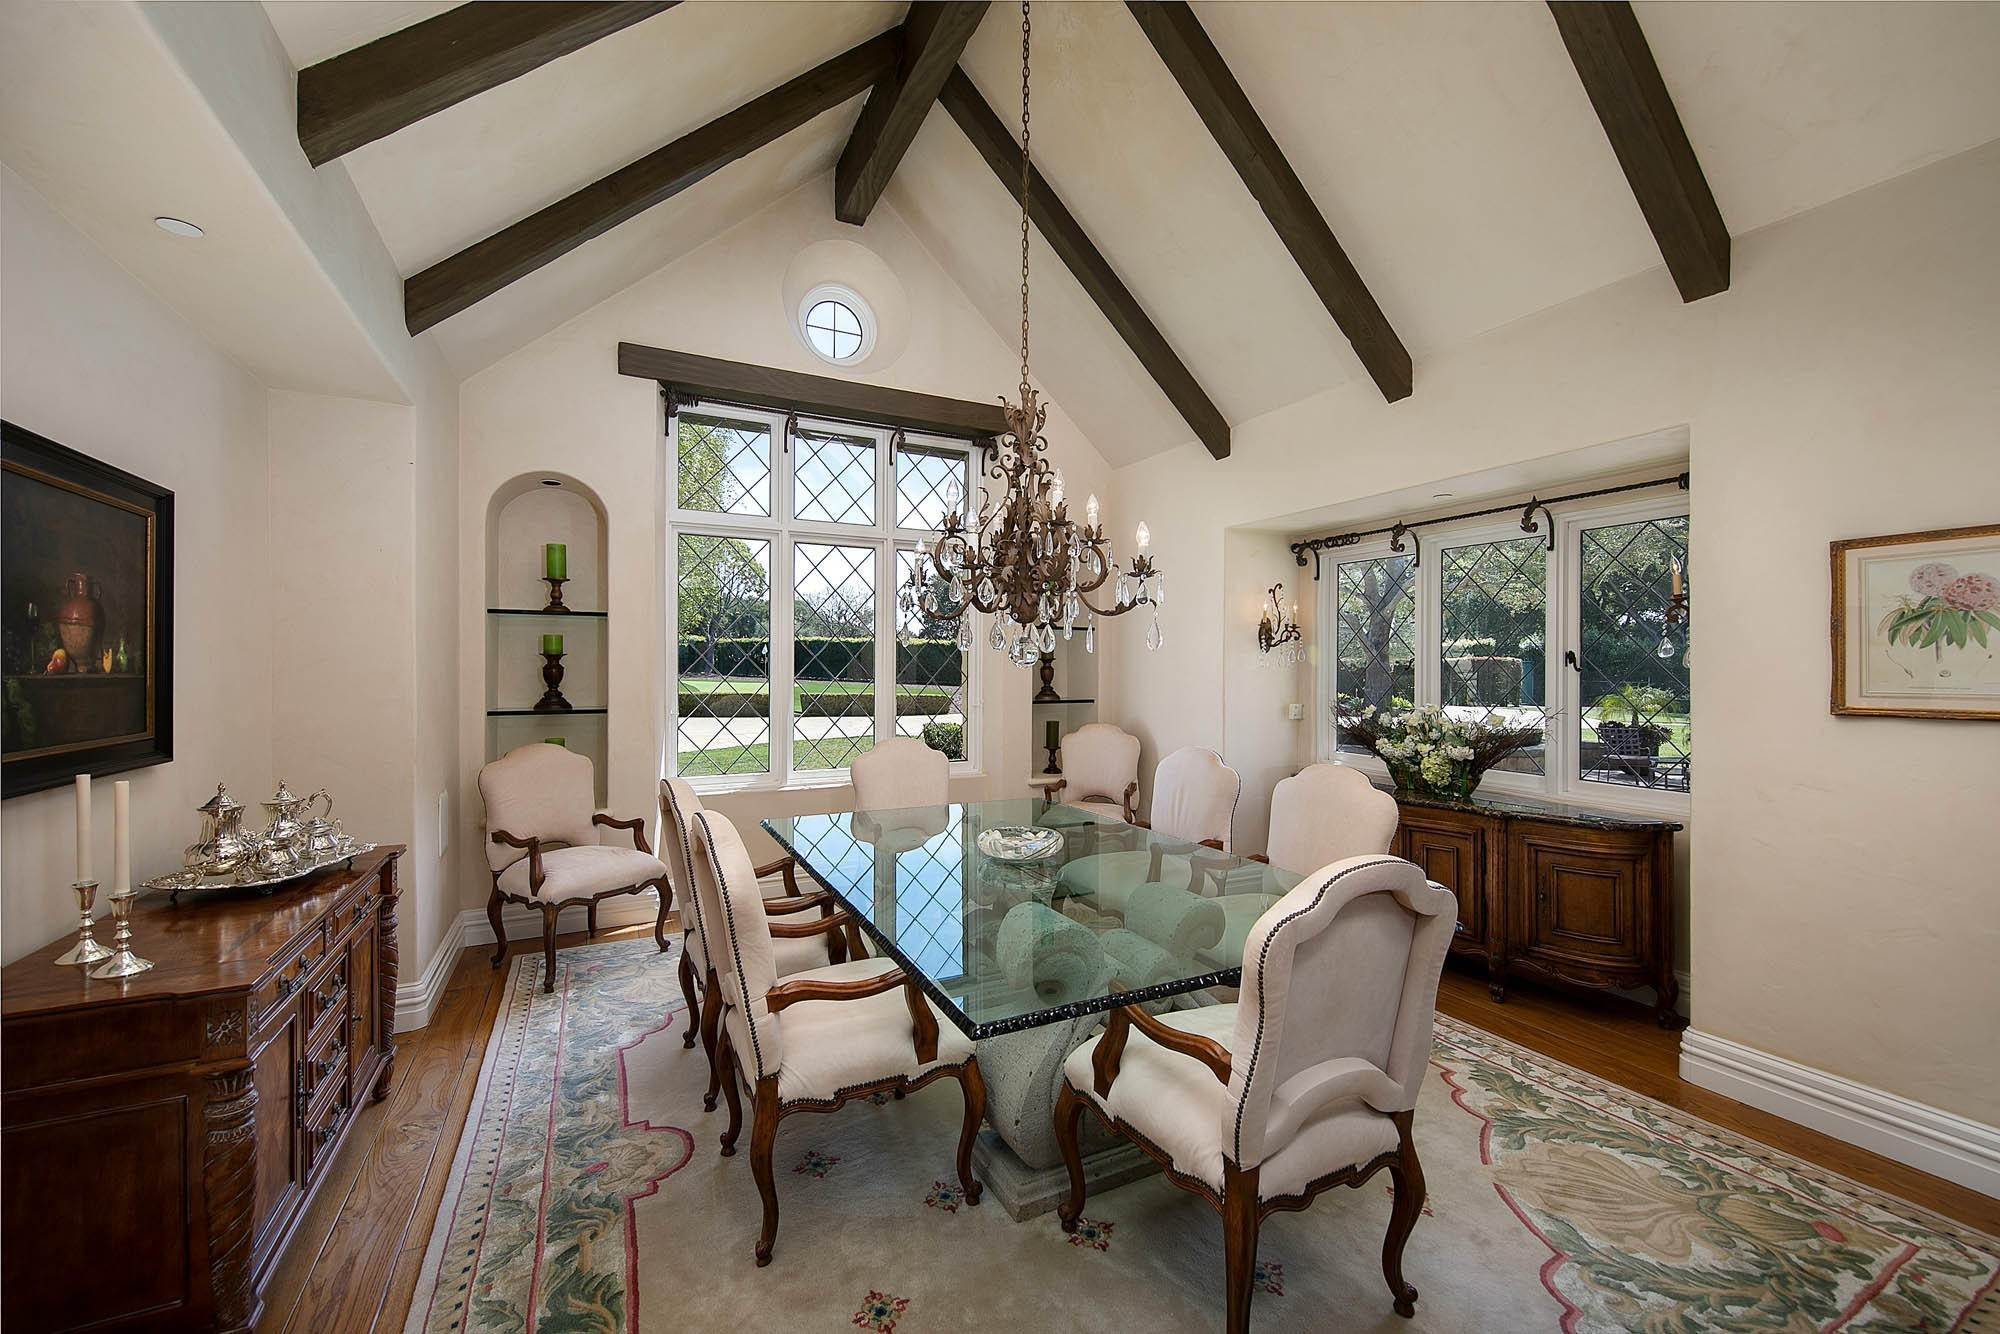 8. Estate for Sale at 4180 Cresta Avenue Santa Barbara, California 93110 United States